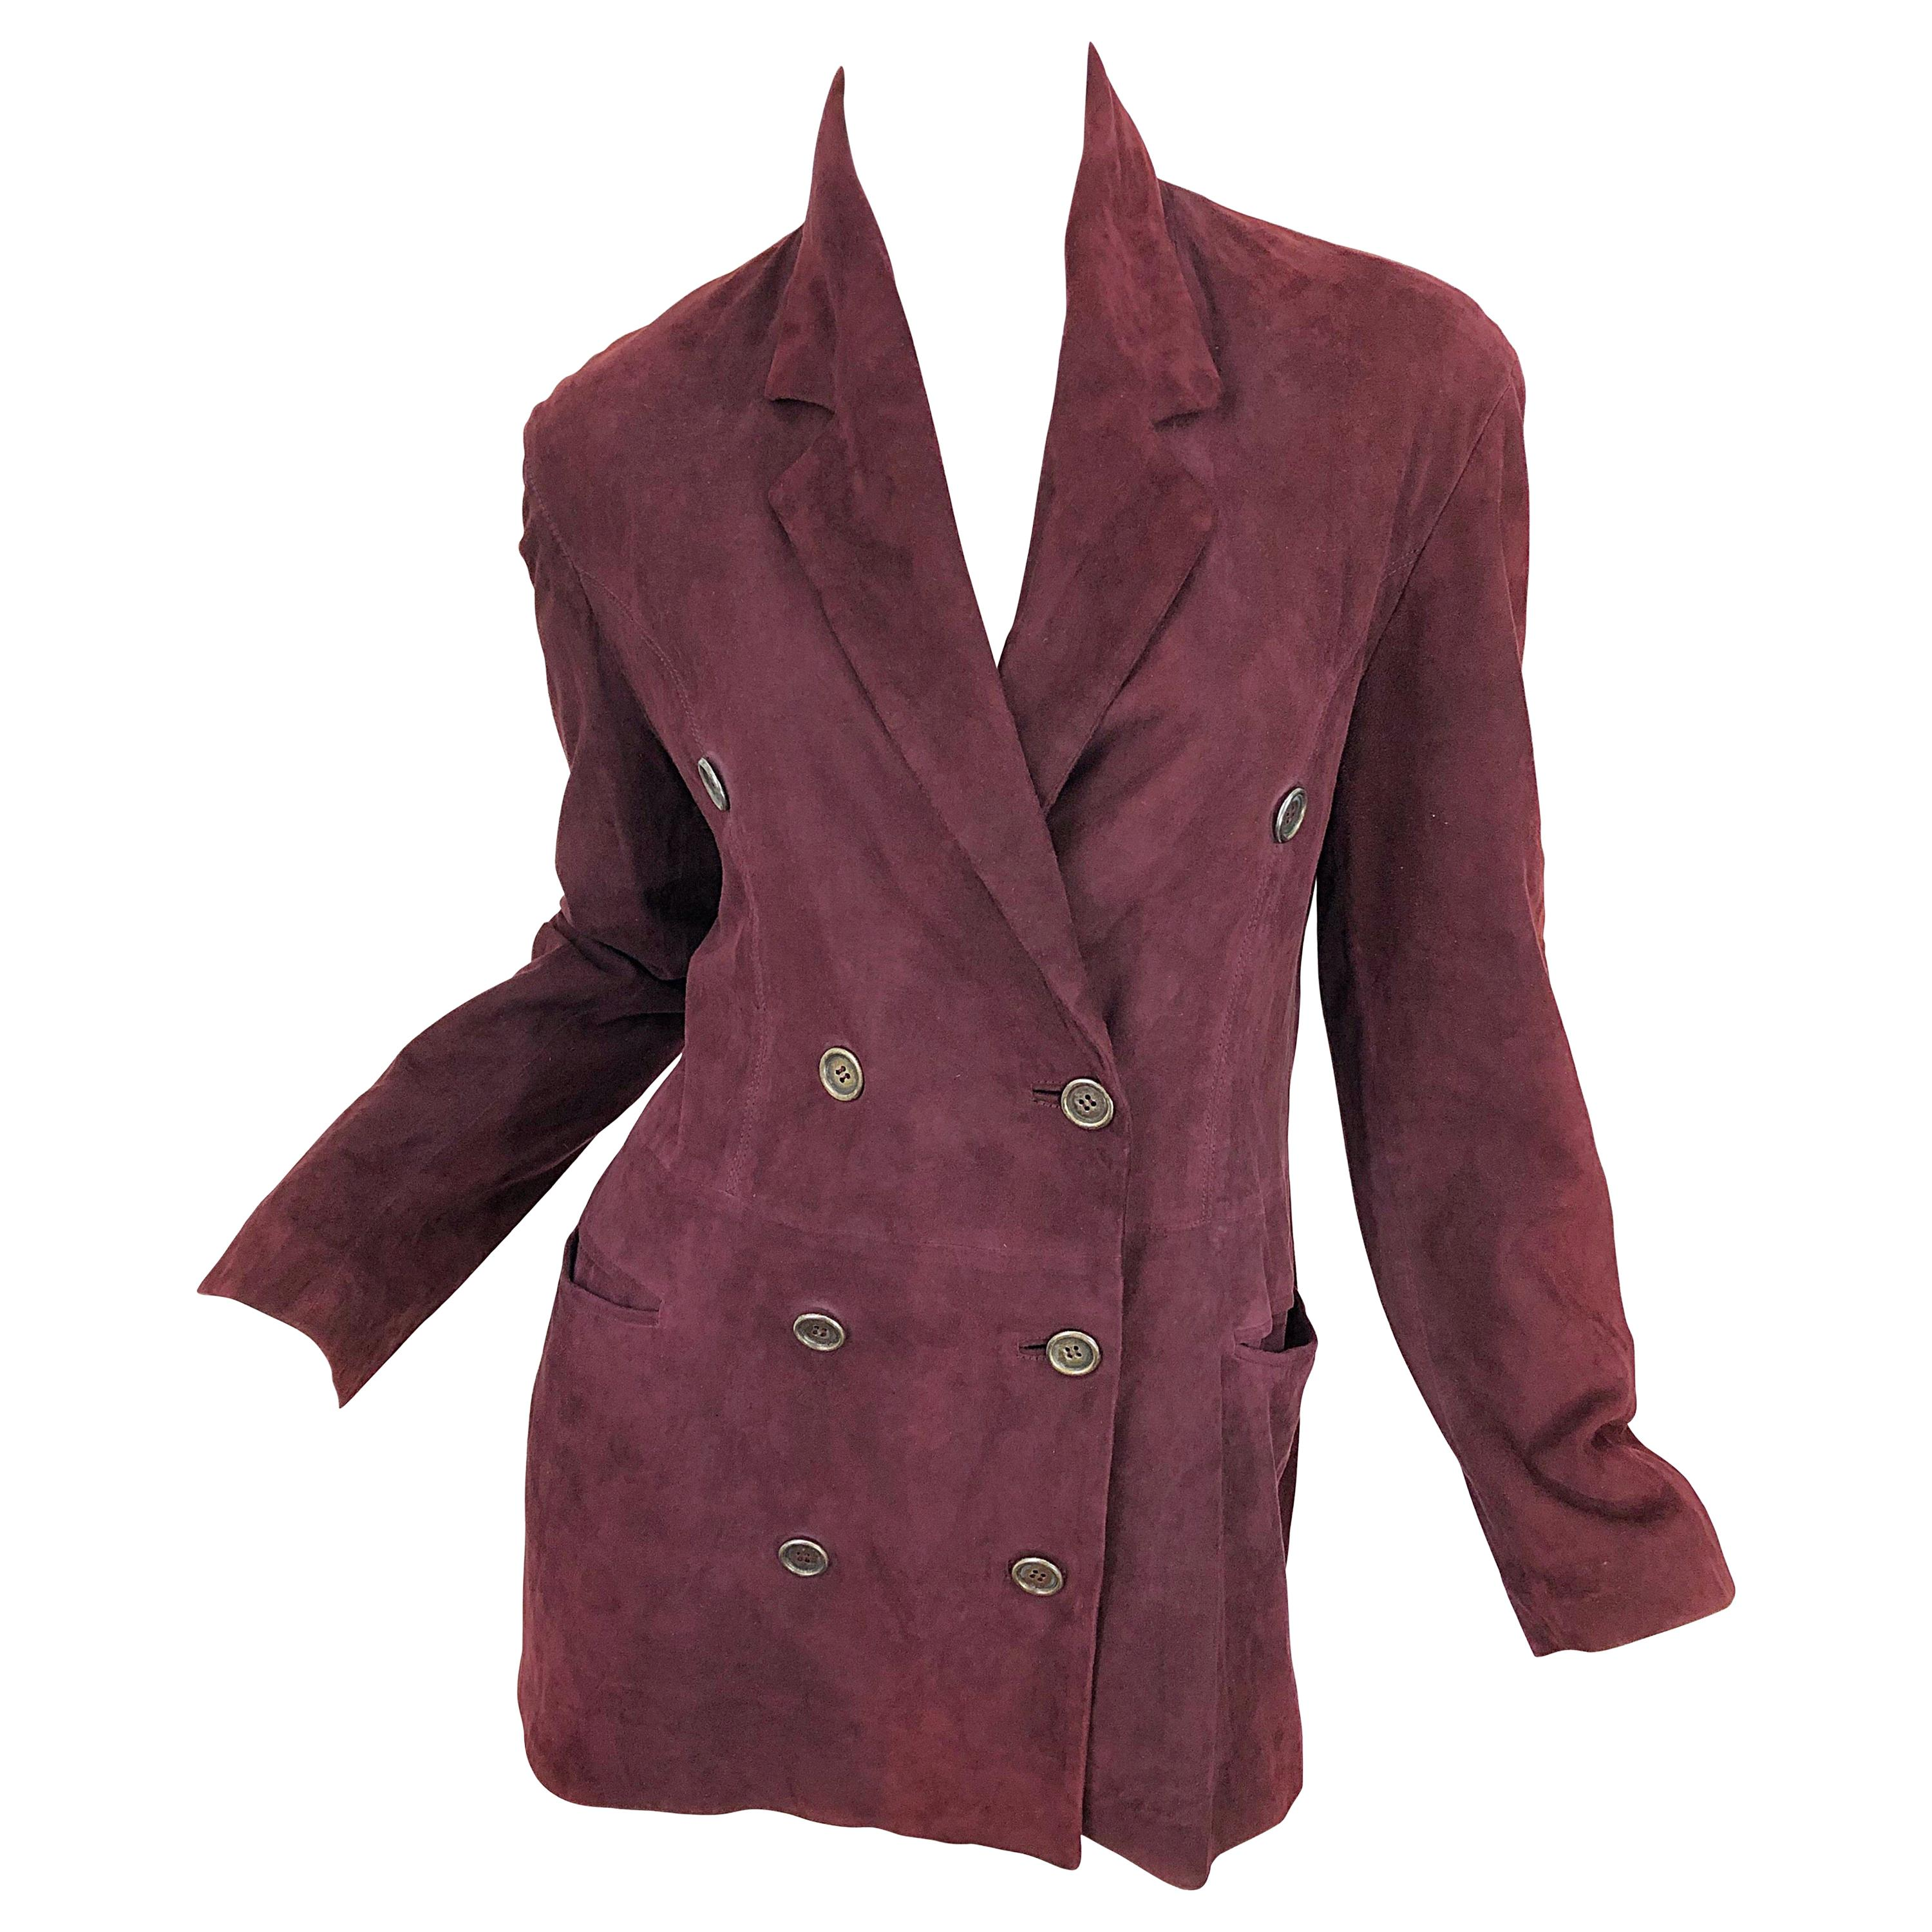 Ozbek 1990s Suede Leather Size 8 Burgundy Maroon Double Breasted Blazer Jacket